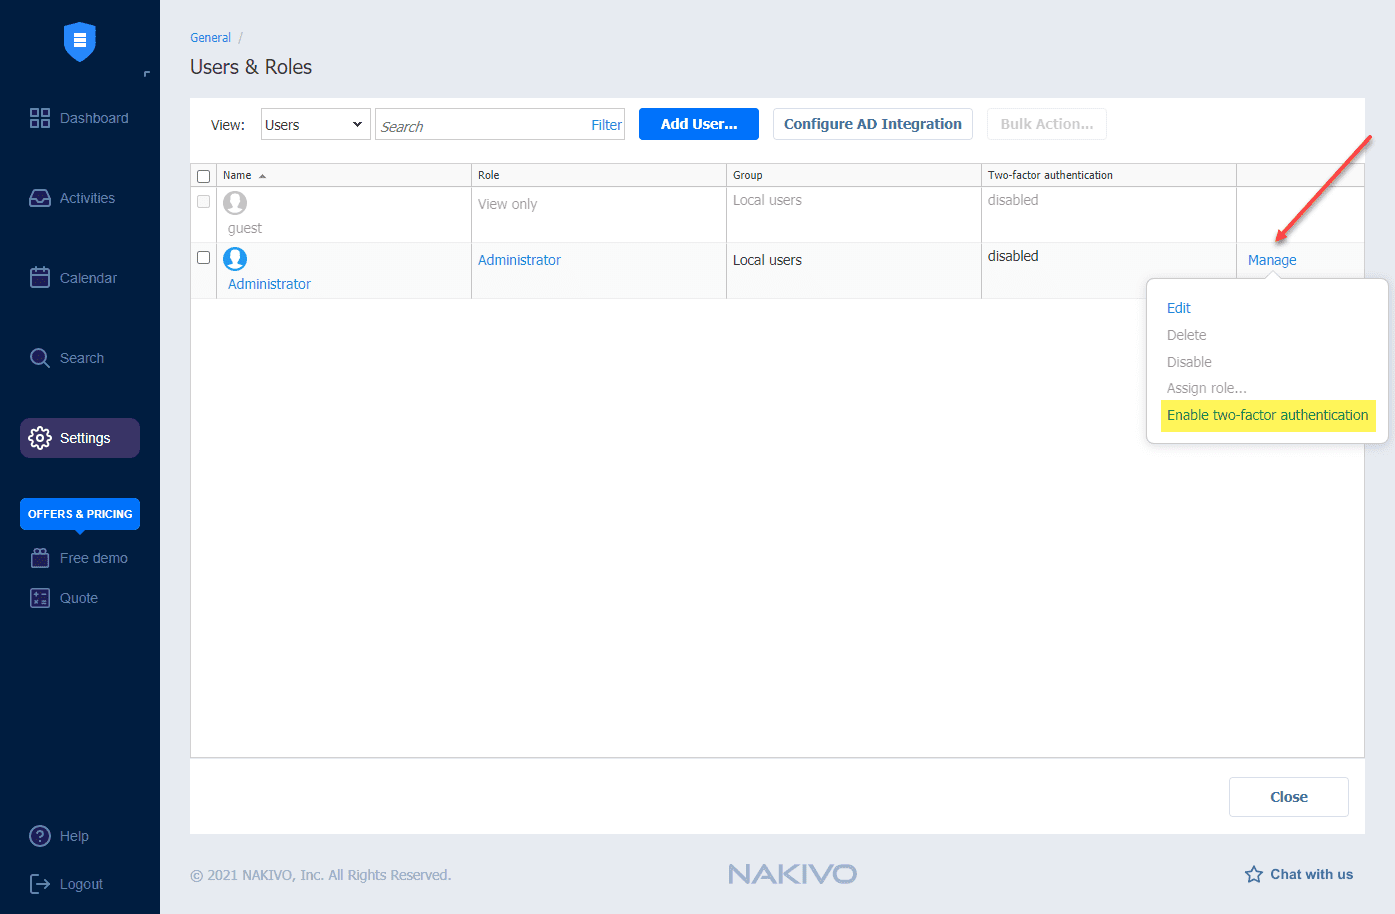 Enabling two factor authentication for an account in NAKIVO beta v10.4